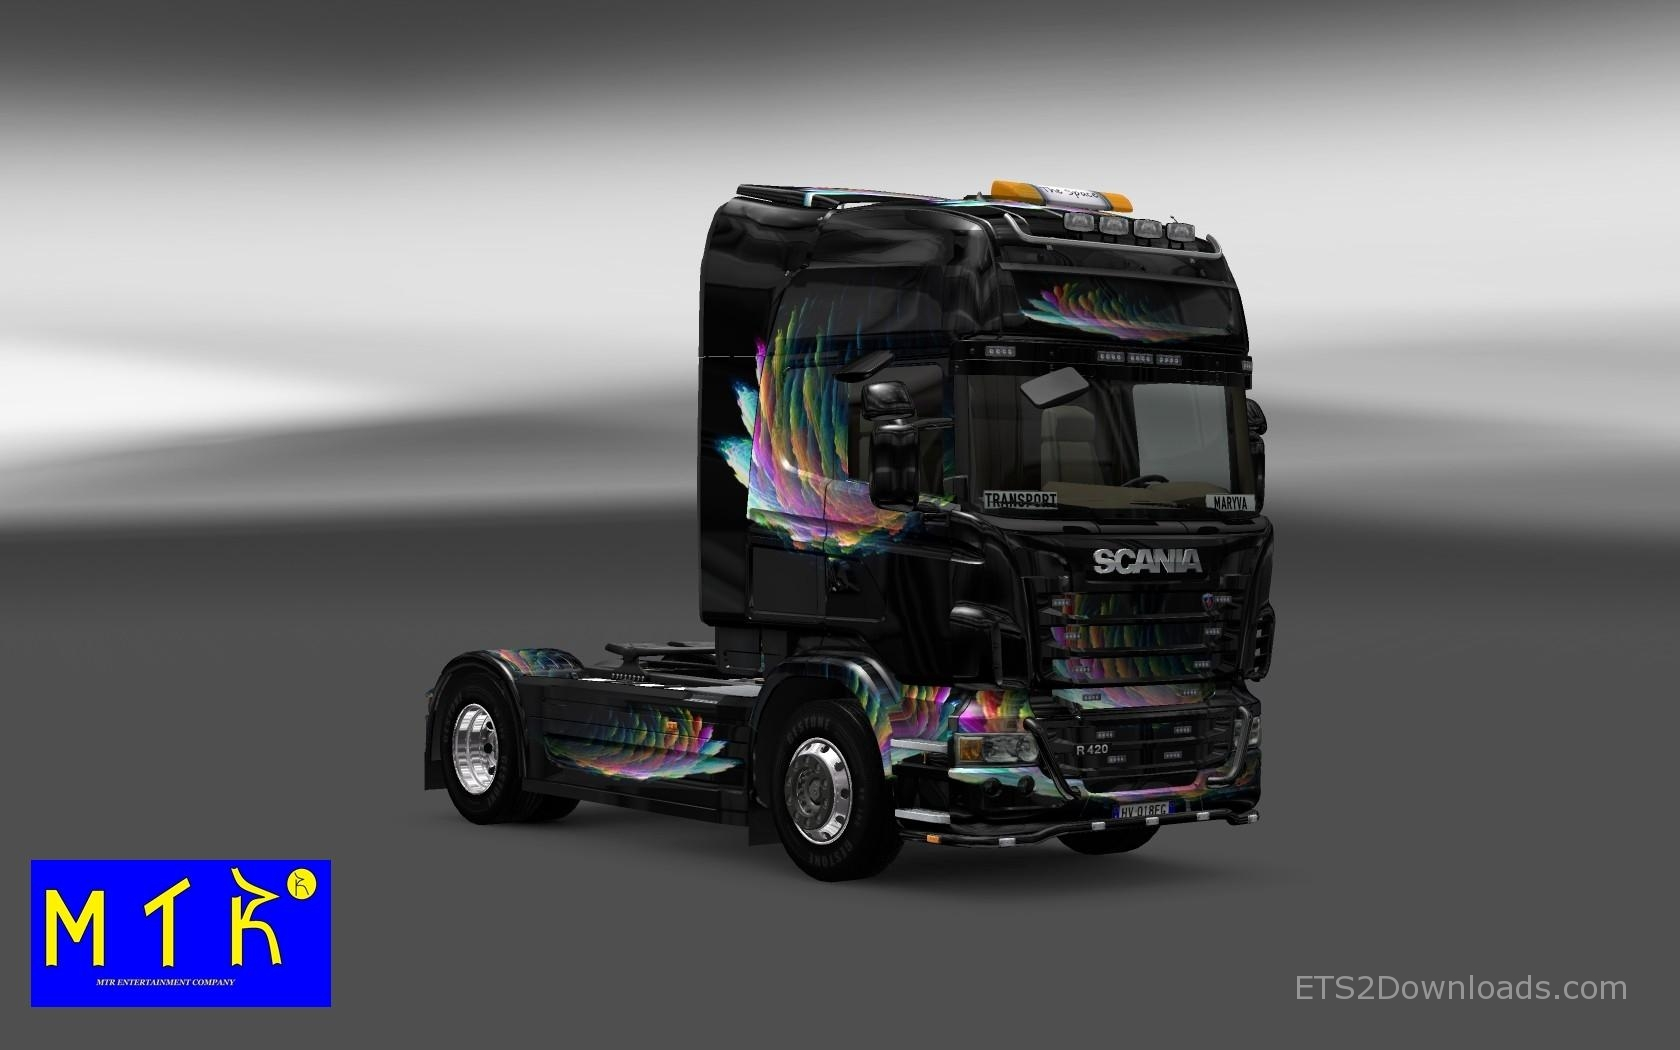 fdt-5838-skin-for-scania-1